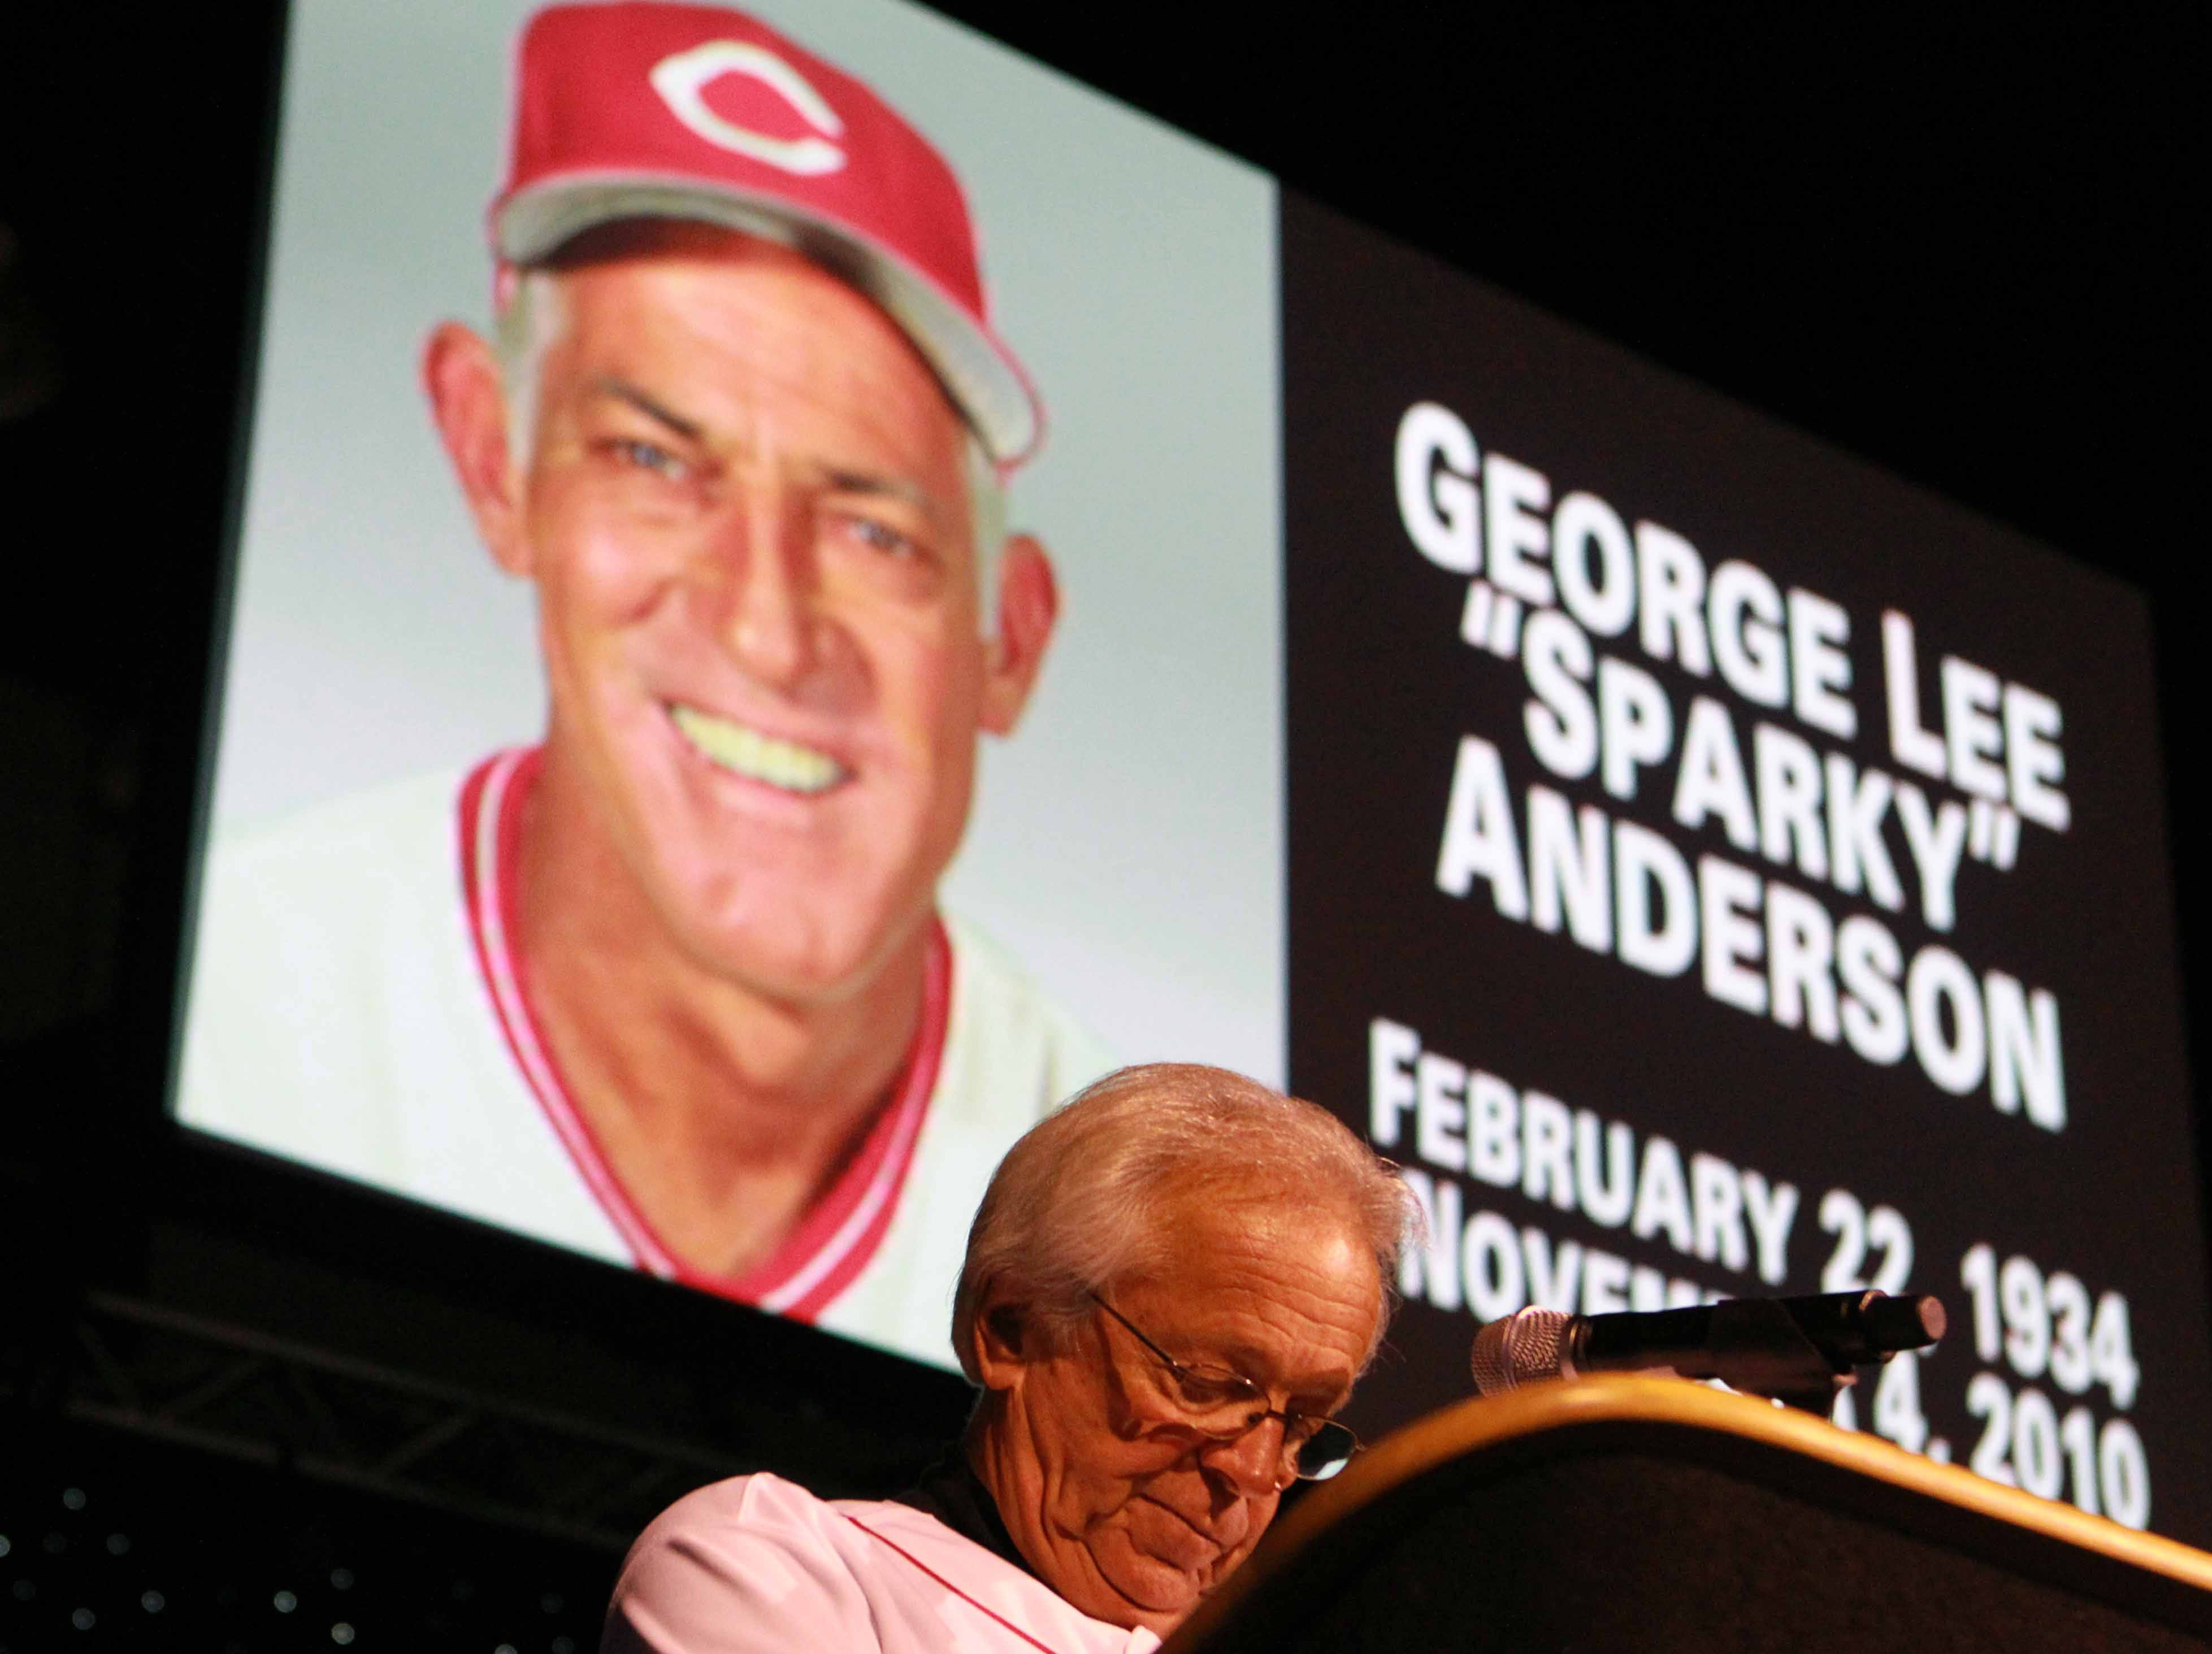 Redsfest Metro Friday December 3, 2010: Marty Brennaman lowers his head for a moment of silence for Sparky Anderson during RedsFest at Duke Energy Convention Center Friday December 3, 2010 in Downtown, Cincinnati. The Enquirer/ Joseph Fuqua II